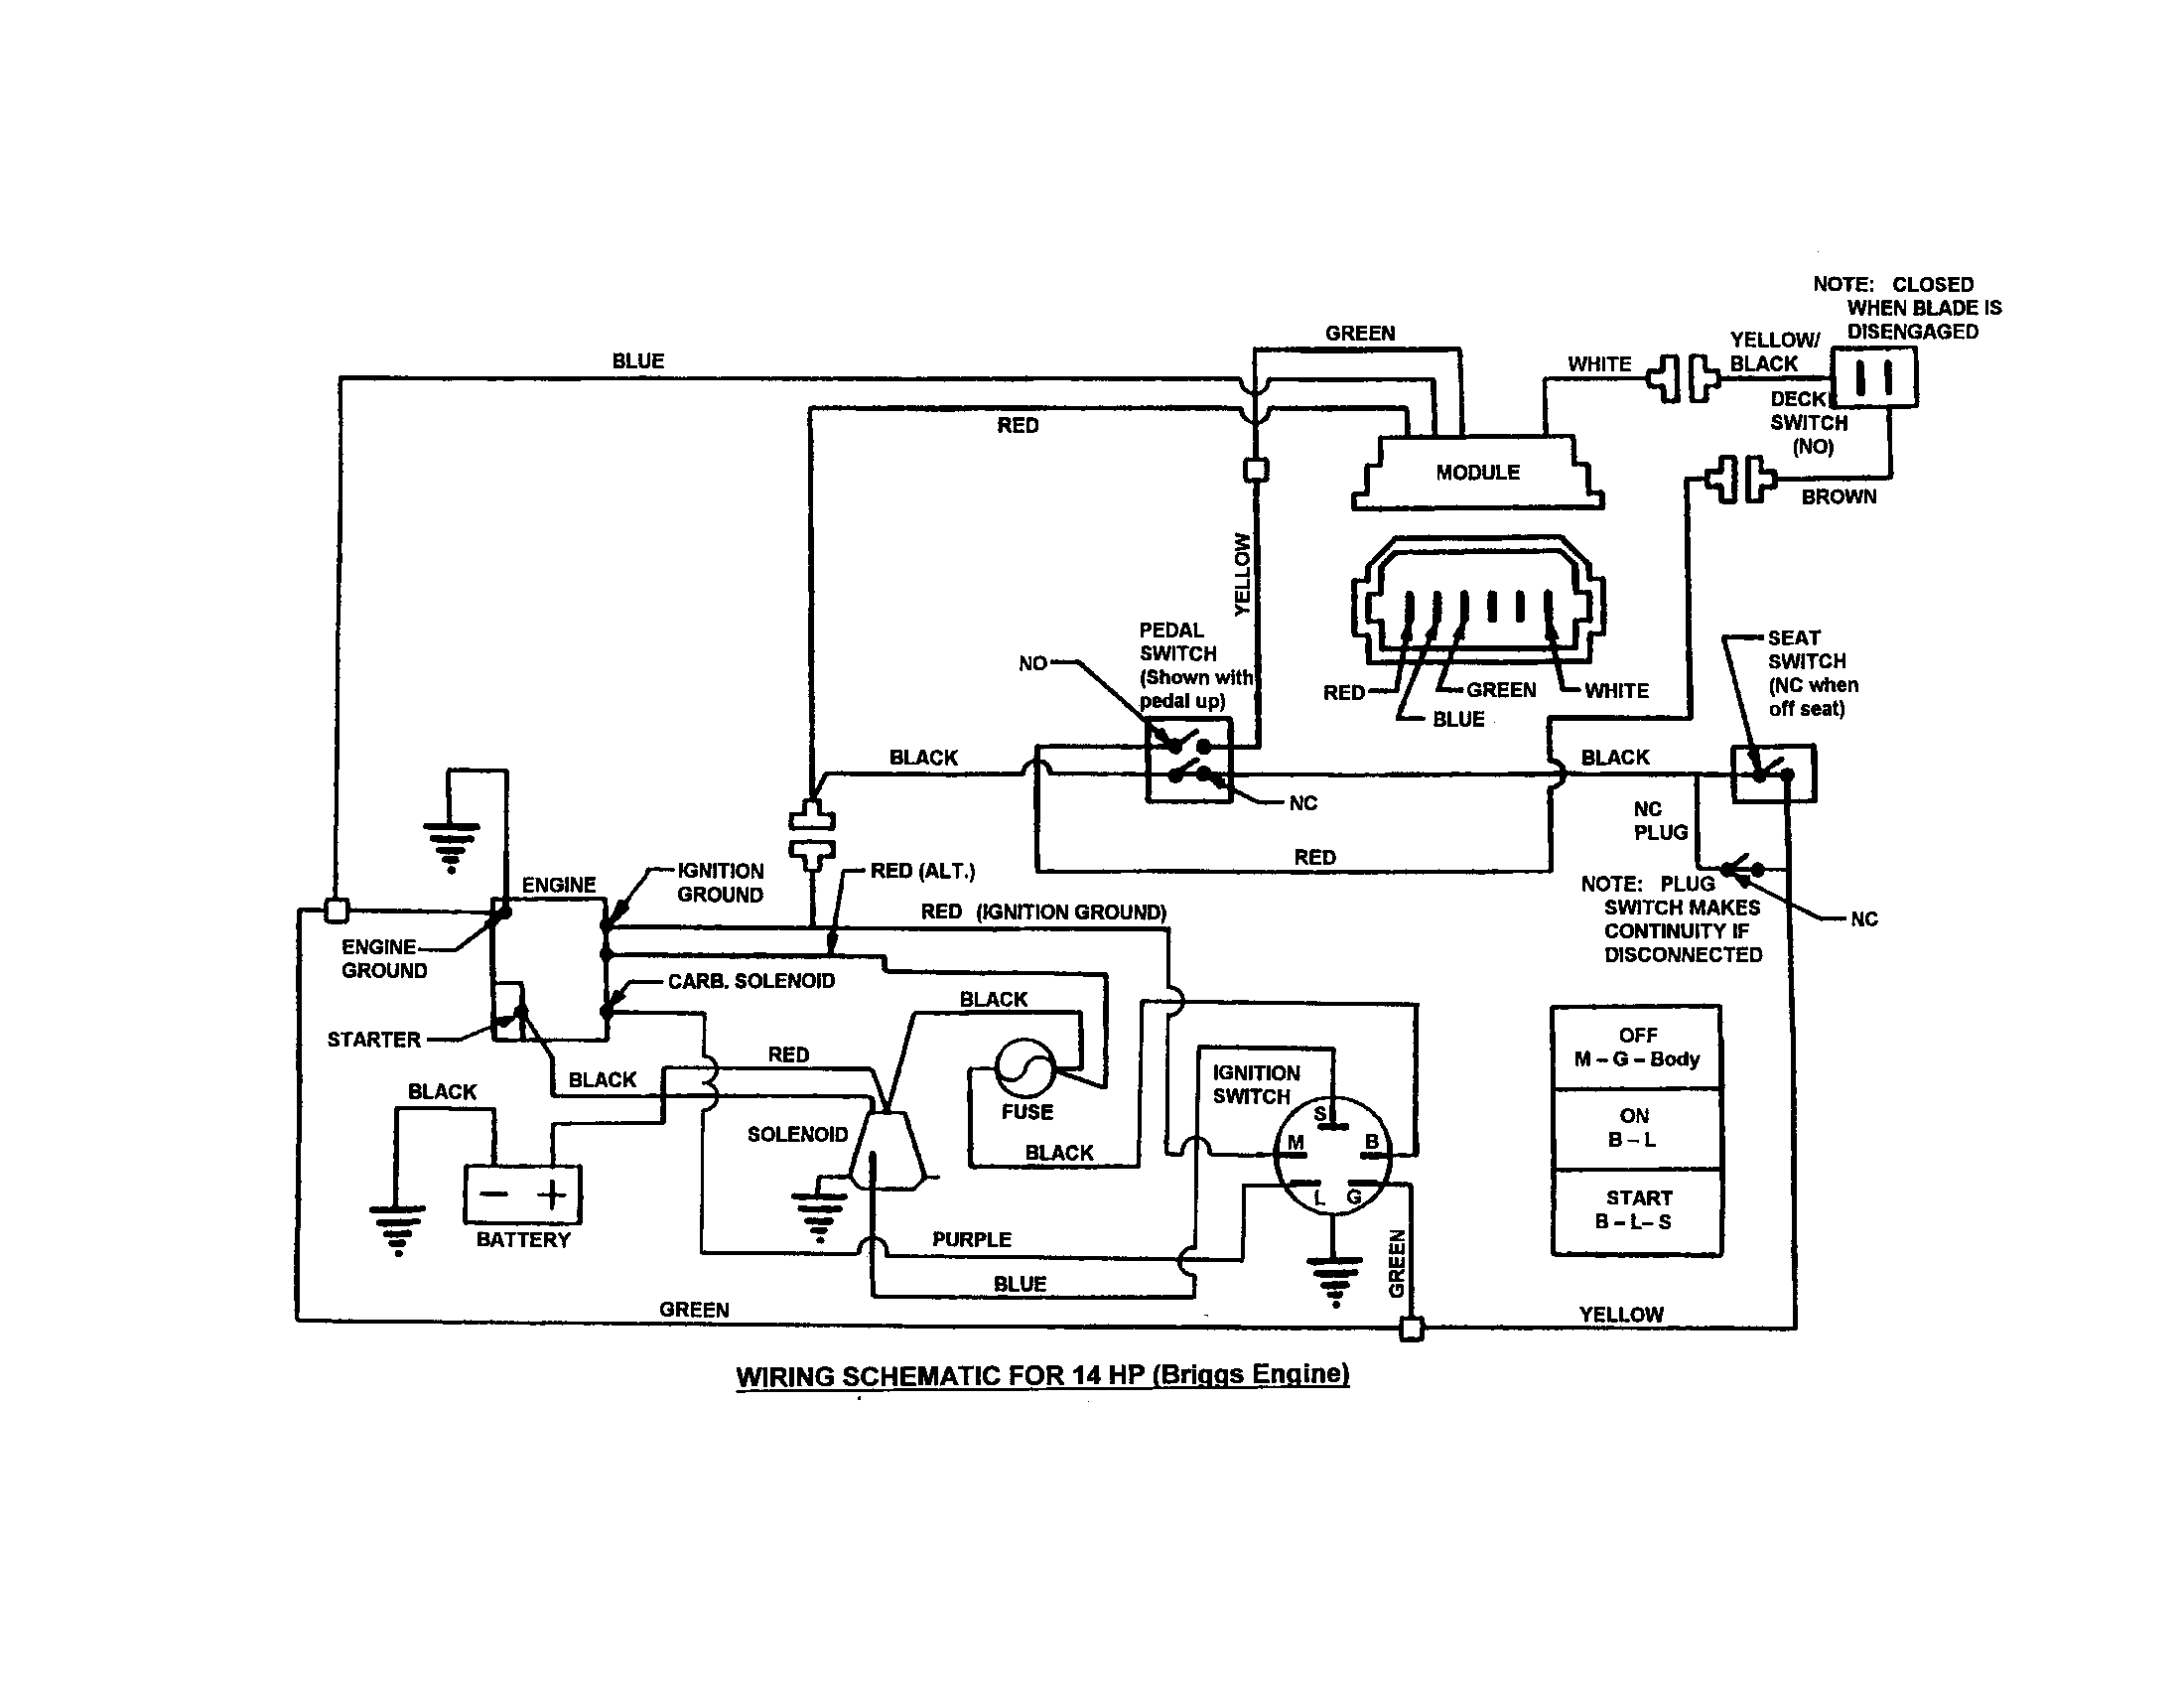 grasshopper 721d wiring diagram